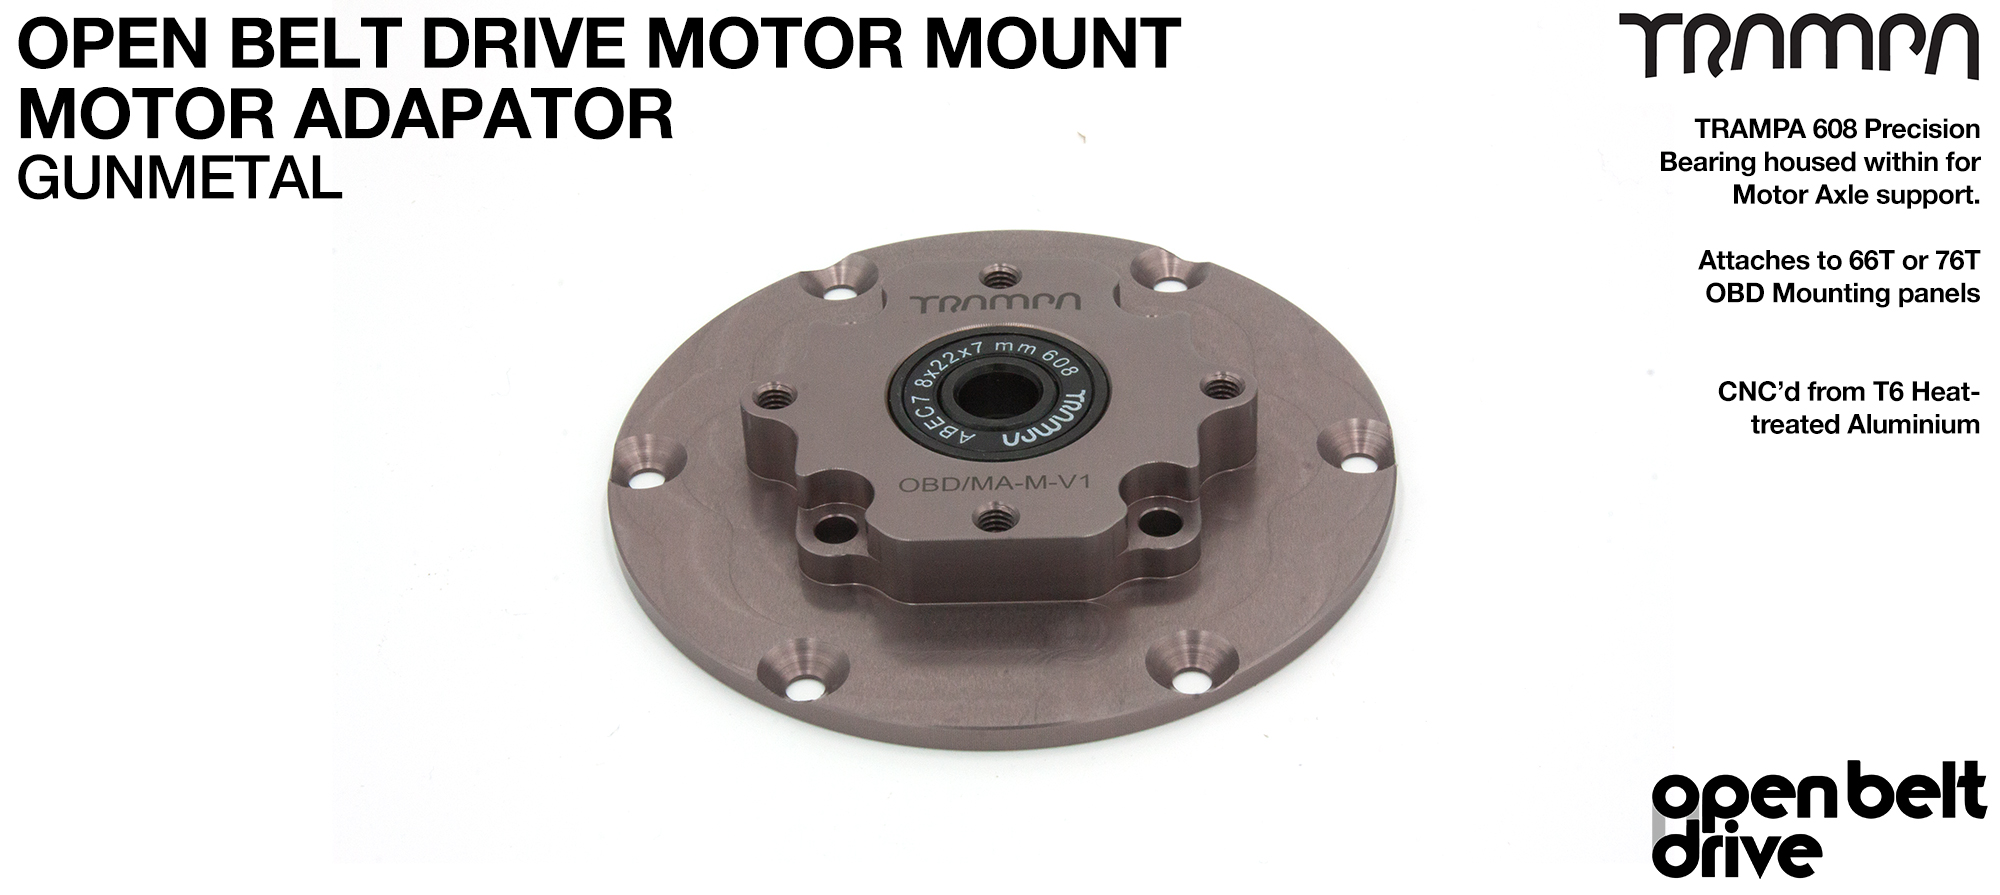 GUNMETAL OBD Motor Adaptor with Housed Bearing